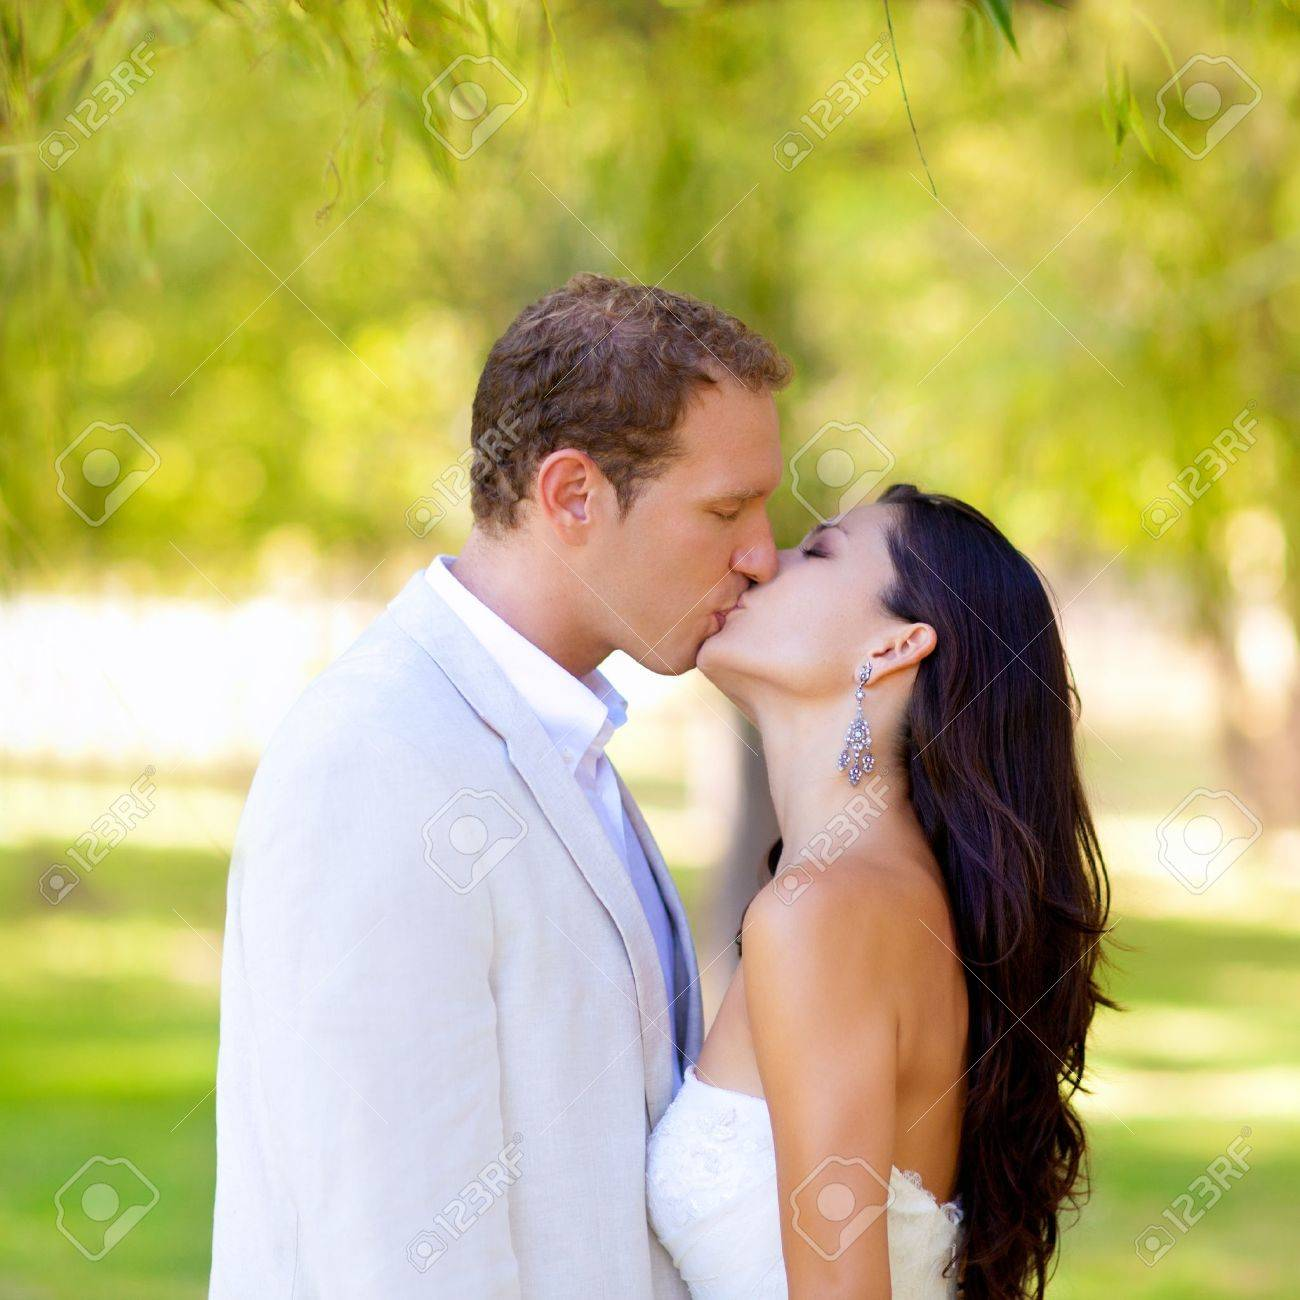 couple happy in love kissing in the park under the trees Stock Photo - 11149567